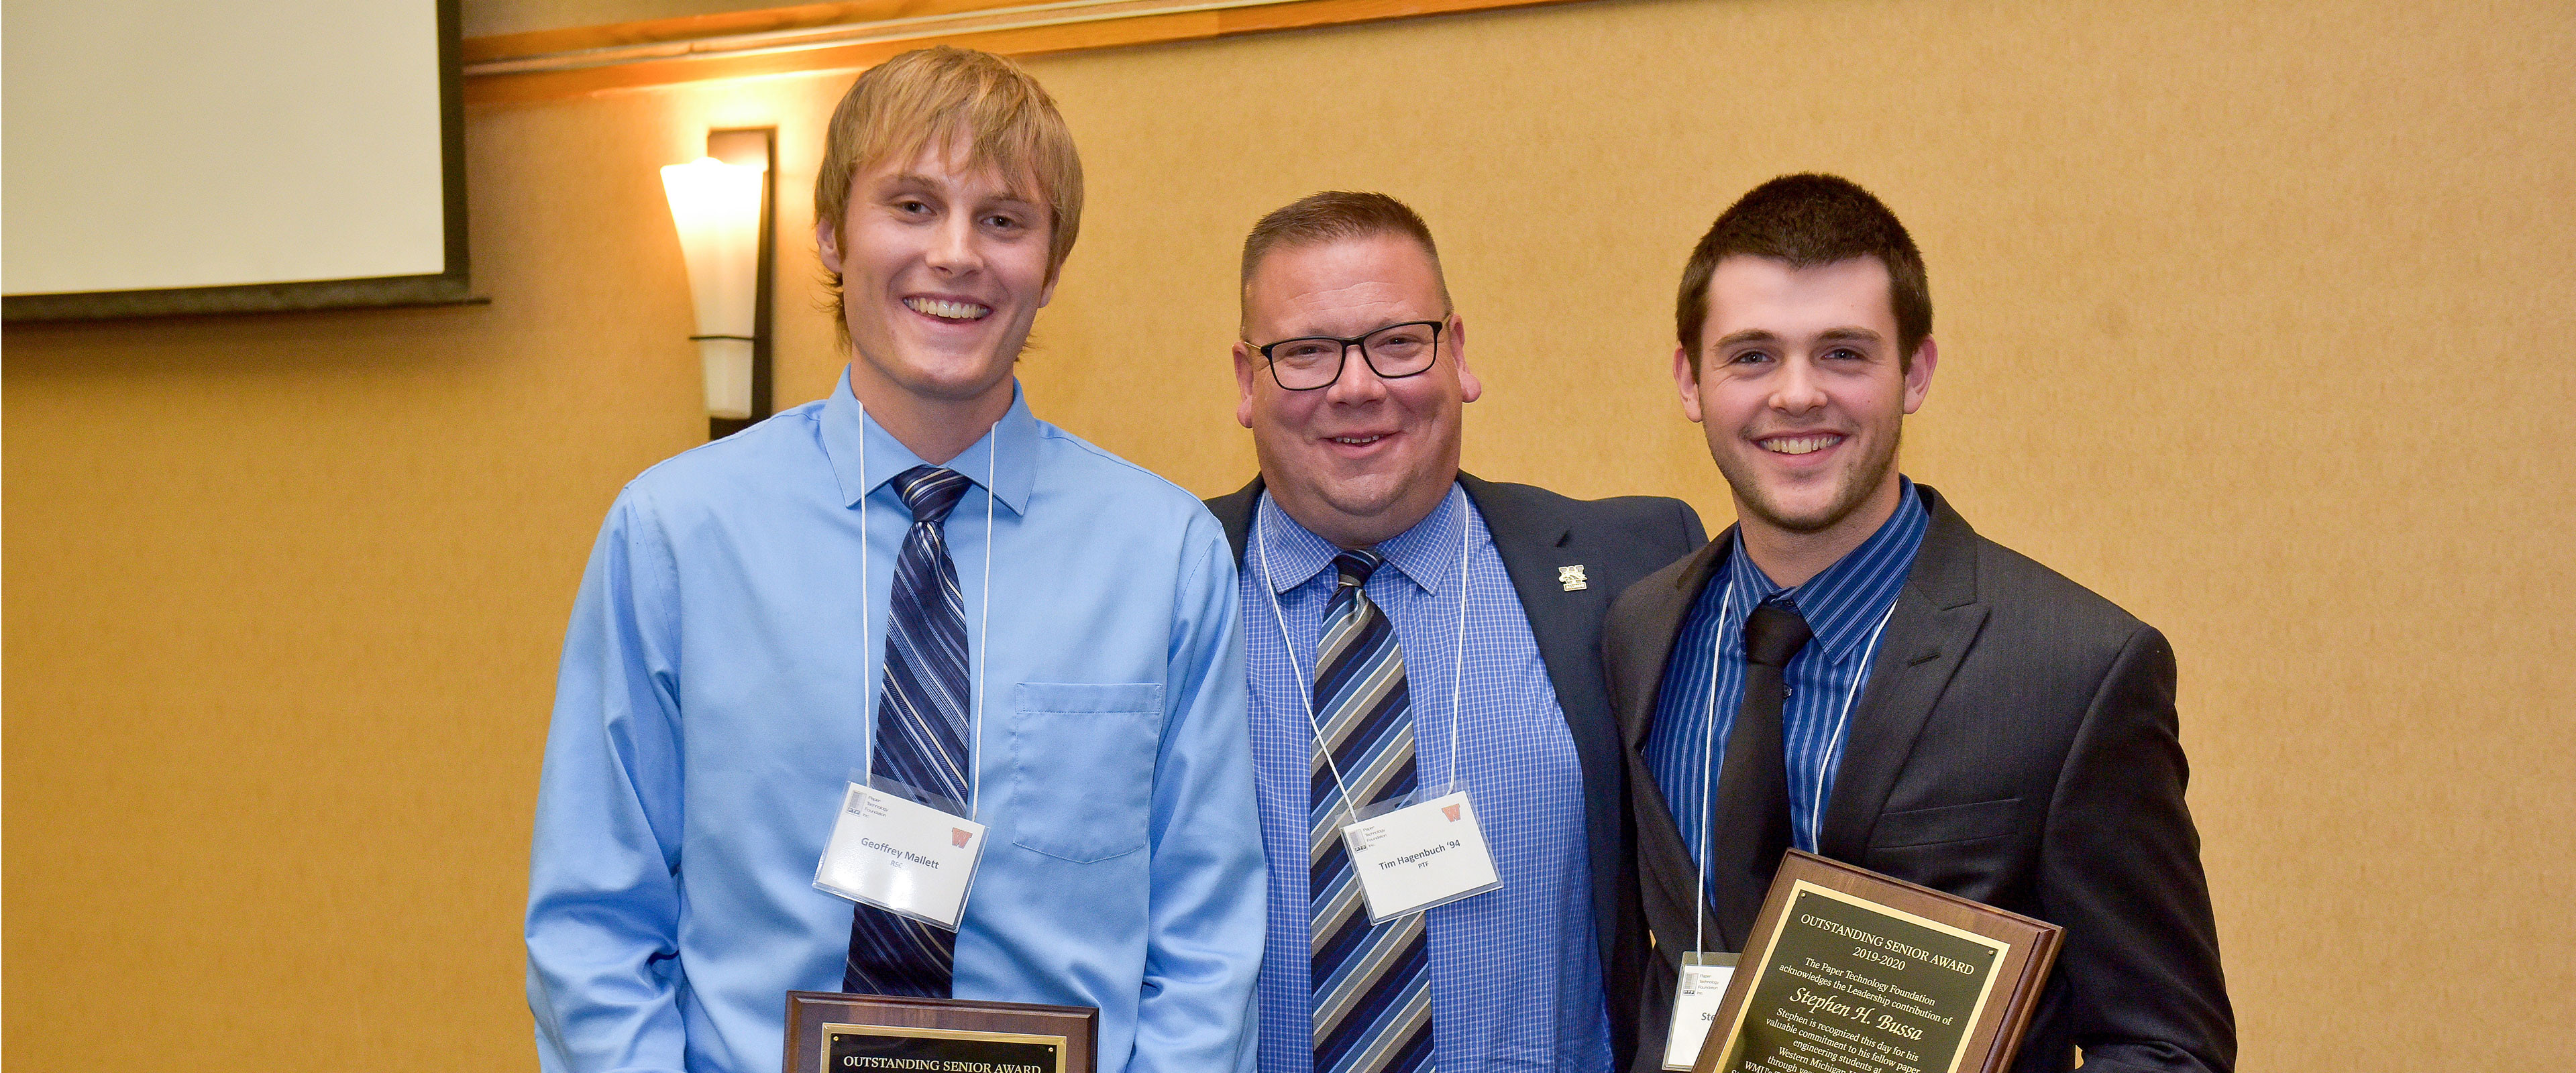 Two student award recipients on either side of Tim Hagenbuch.